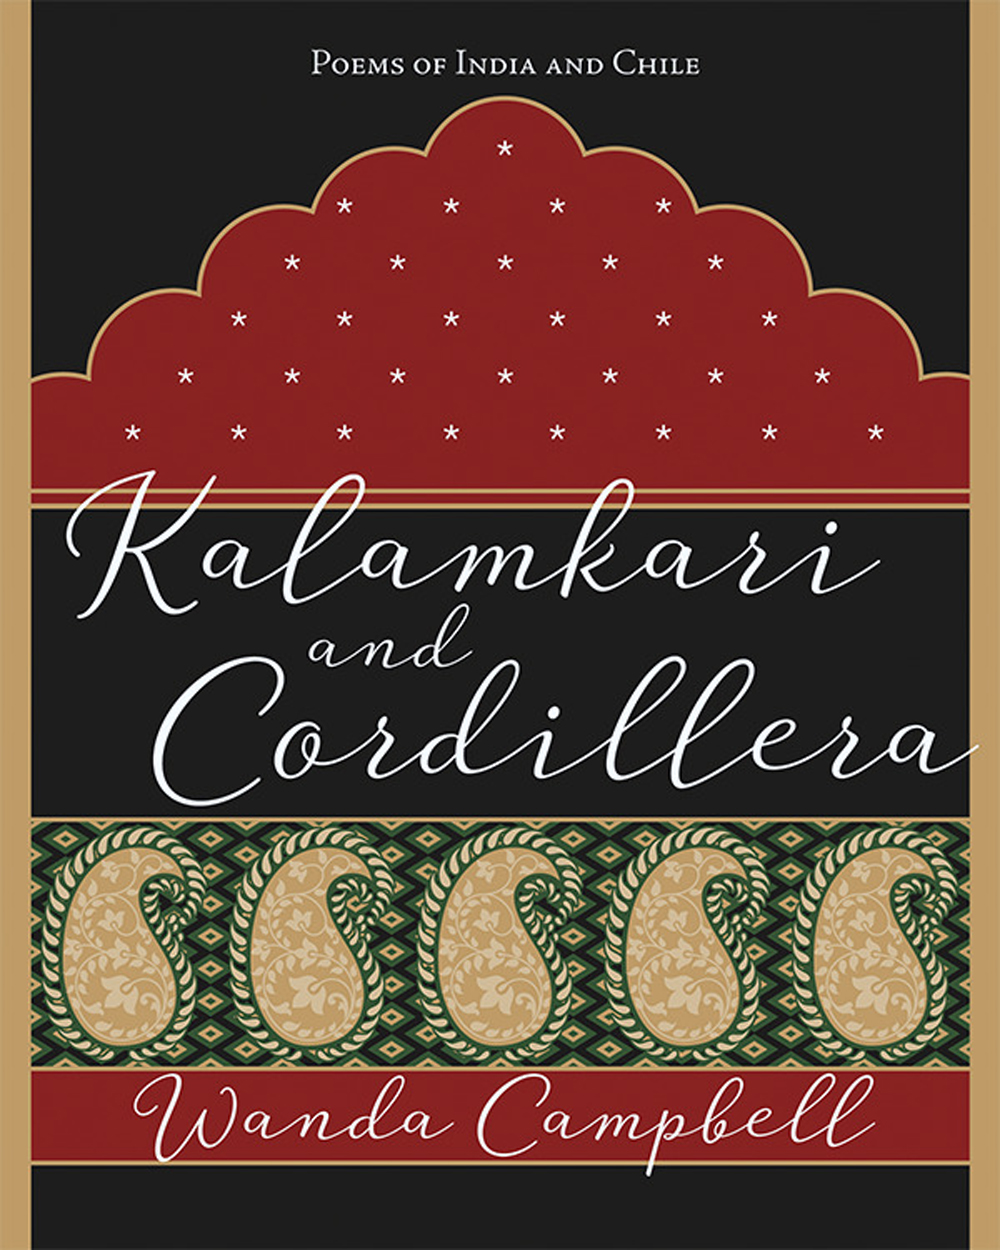 Kalamkari & Cordillera: Poems of India and Chile